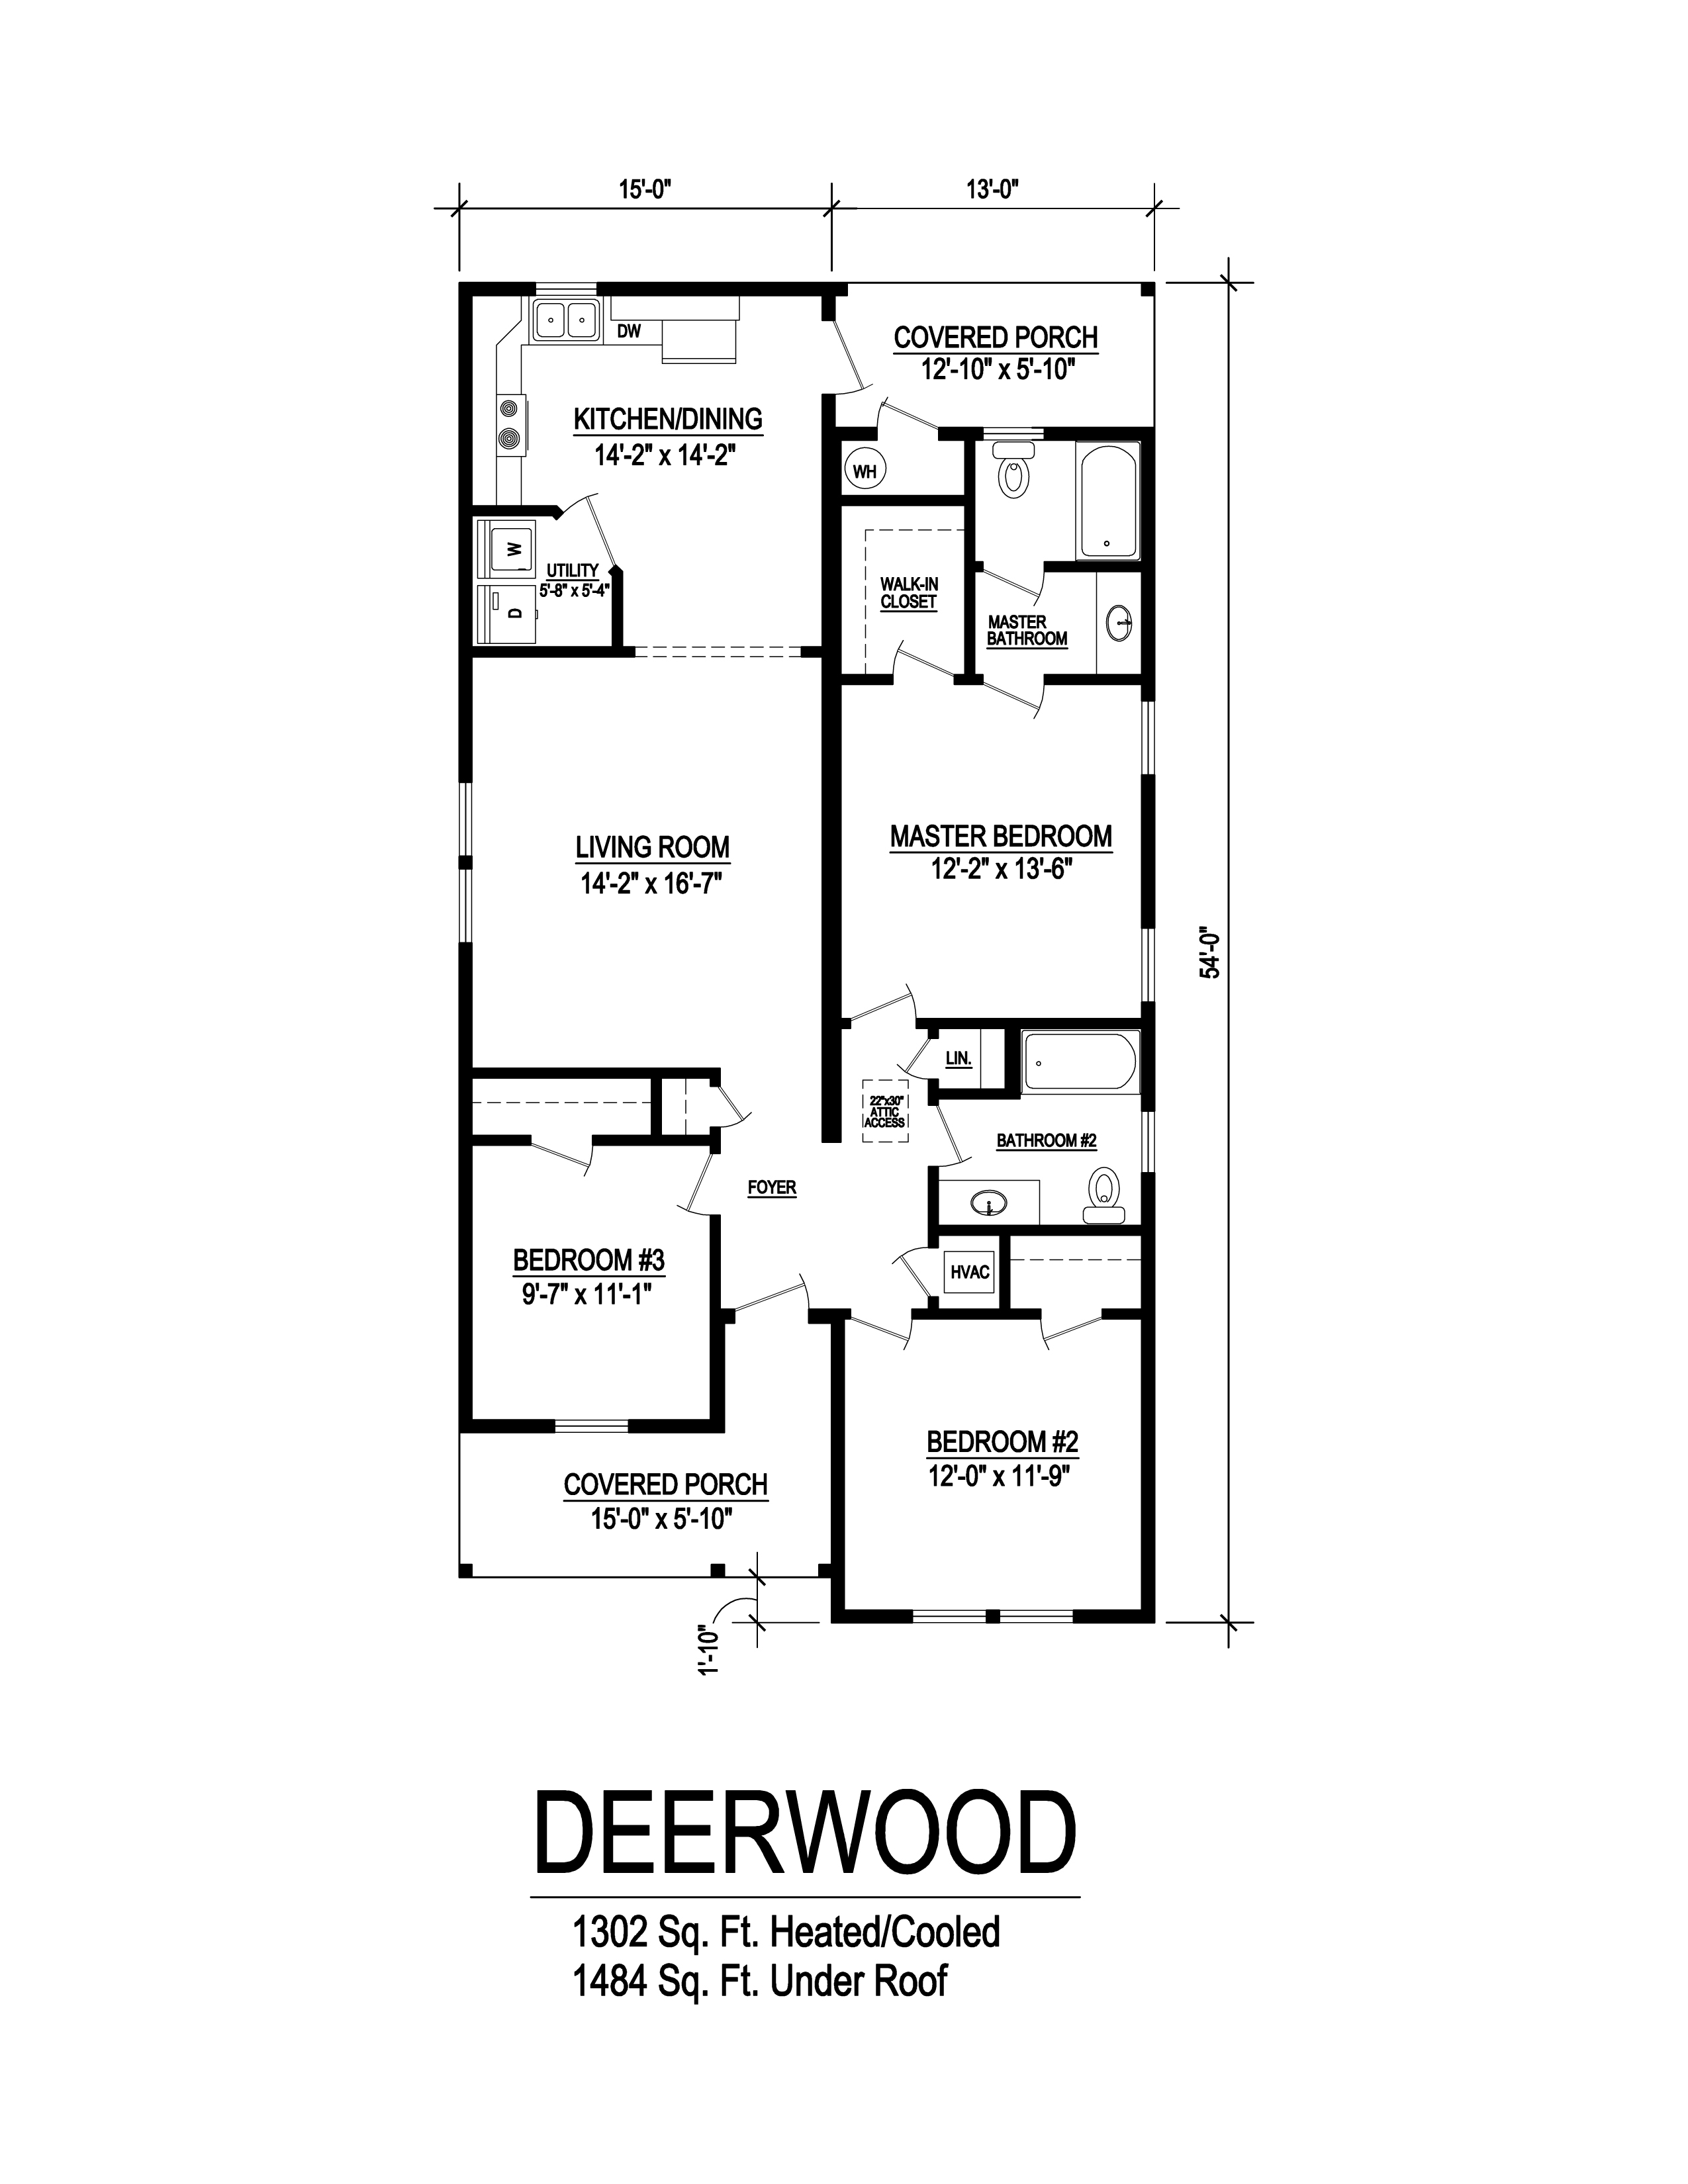 deerwood floorplan